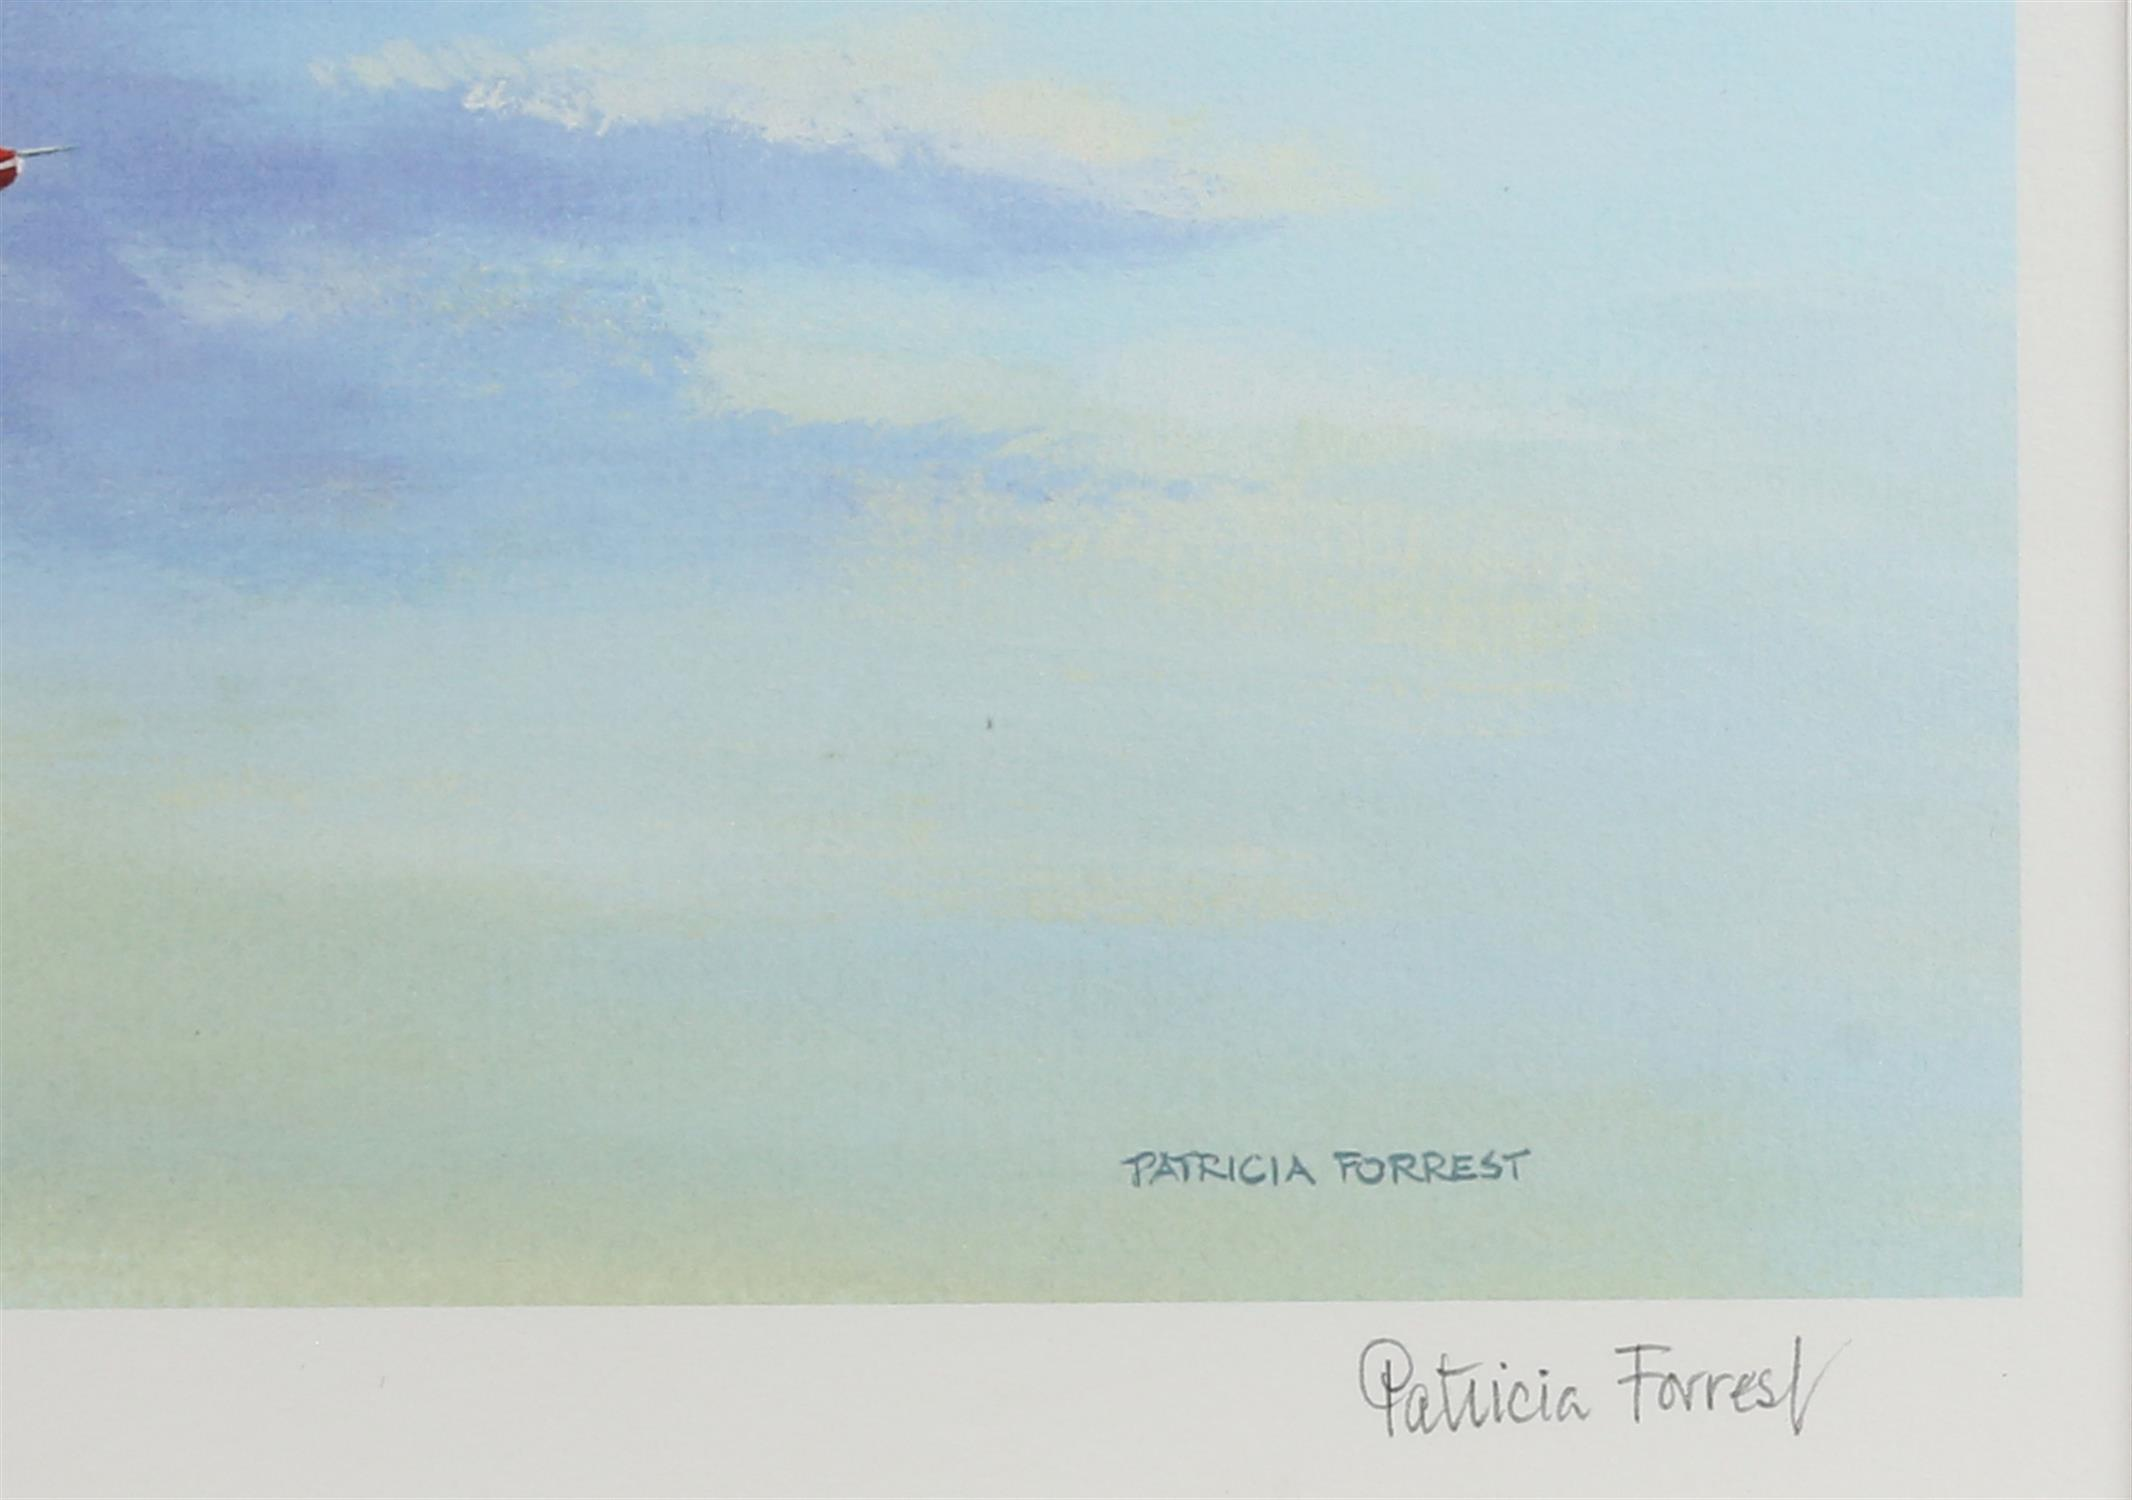 Patricia Forrest (20th Century). 'Concorde Salute', limited edition print, titled, - Image 3 of 4